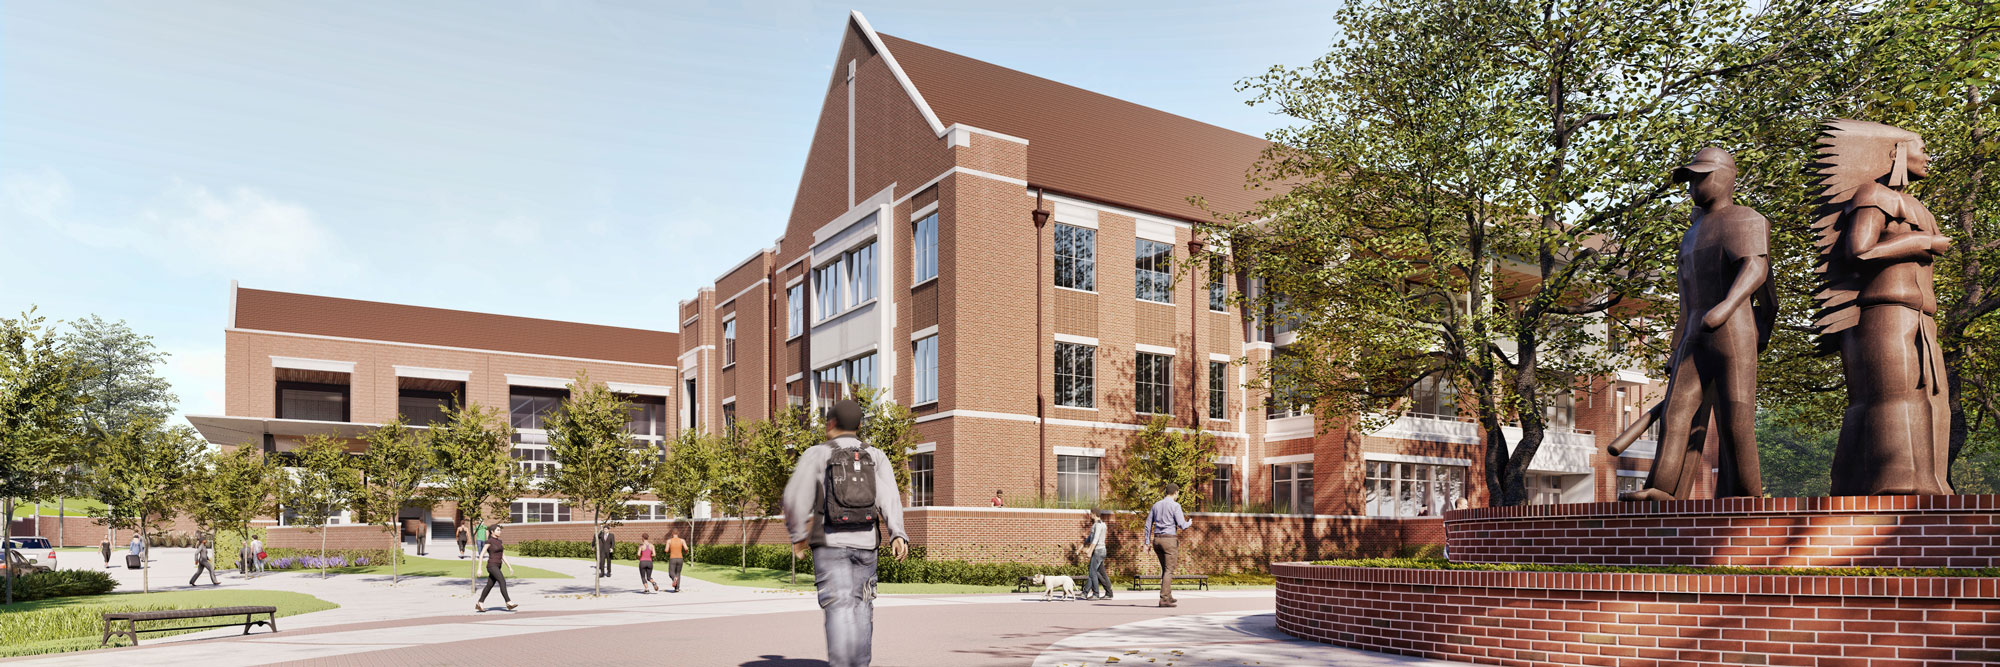 Photo rendering of new Student Union at Florida State University